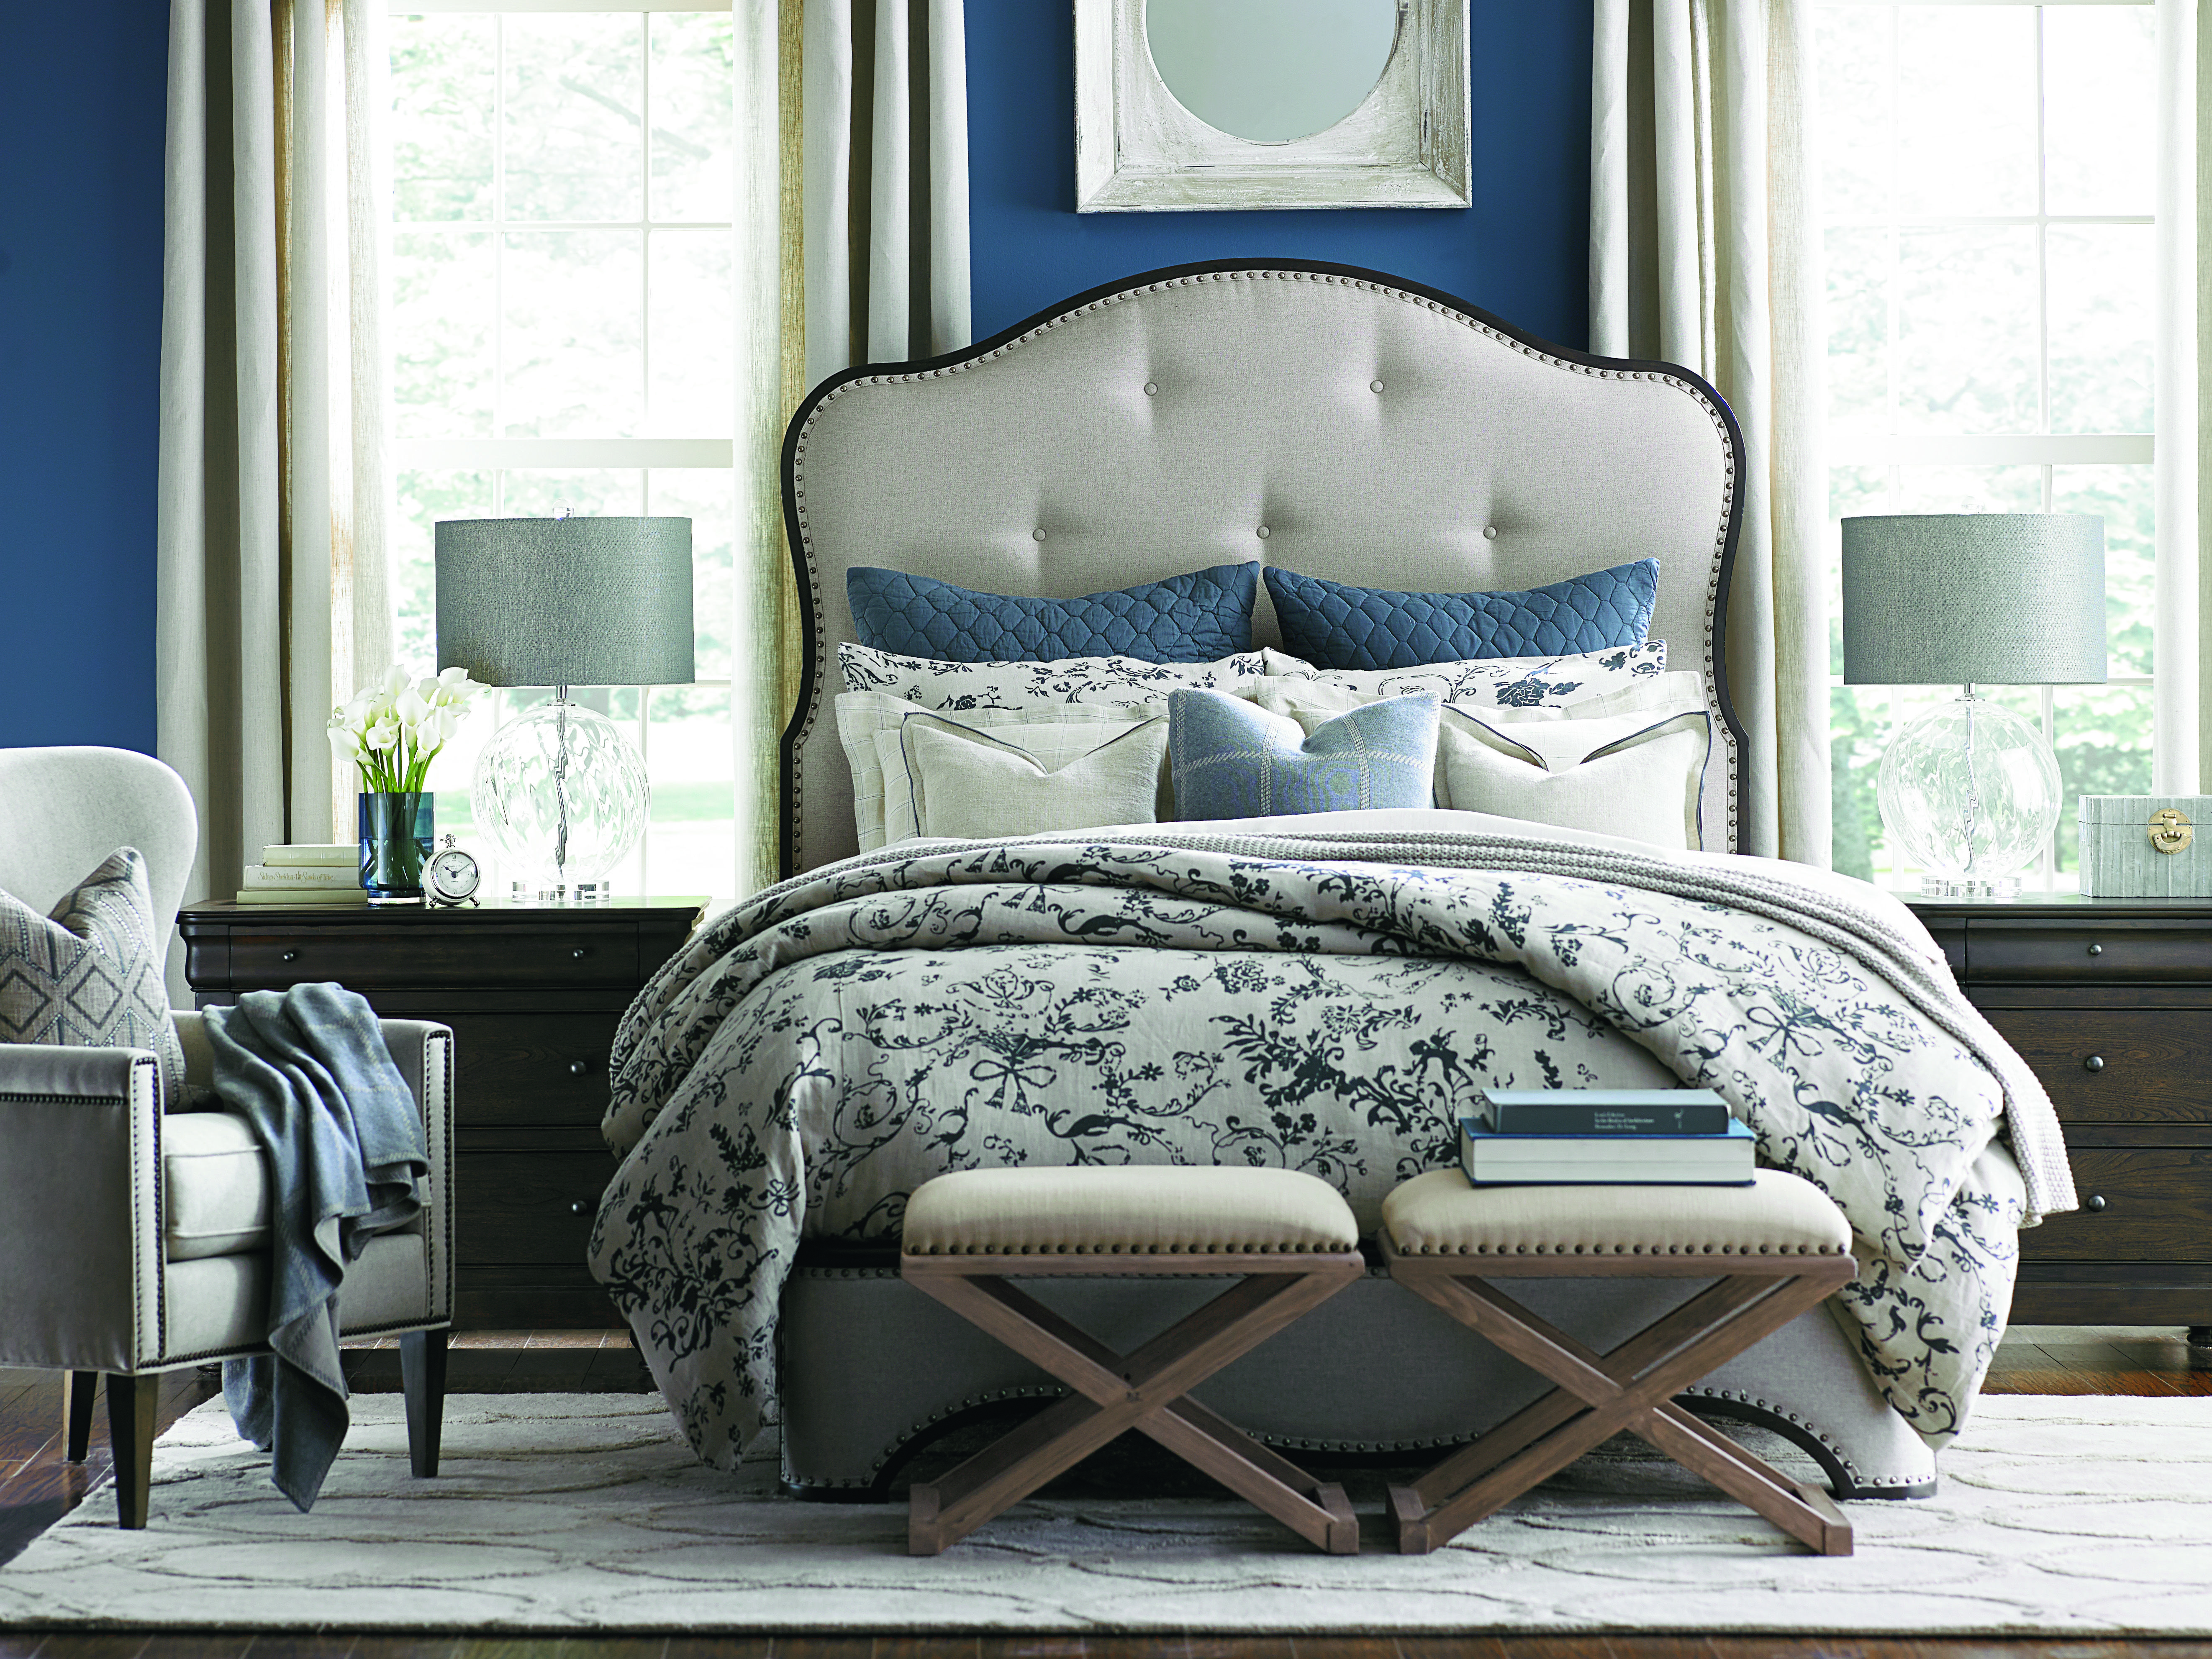 A mixture of blues and whites give this Bassett bedroom